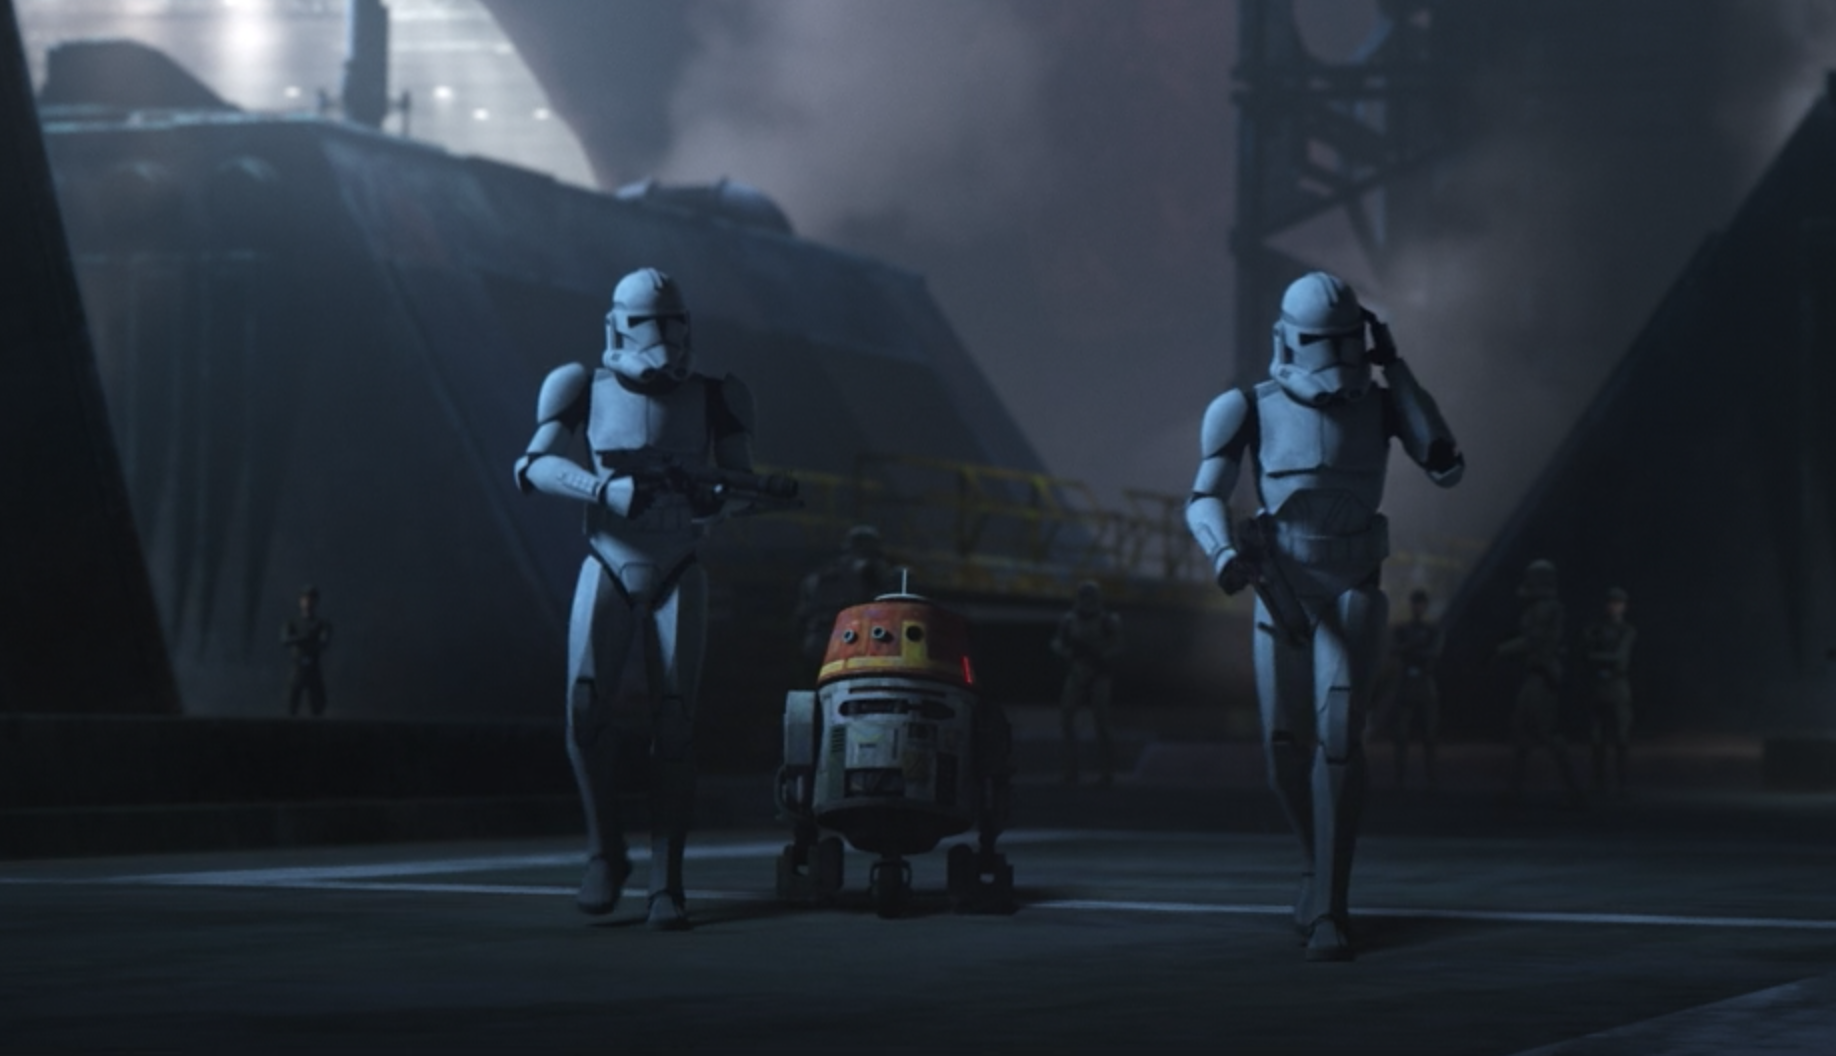 Chopper following two clone troopers in The Bad Batch